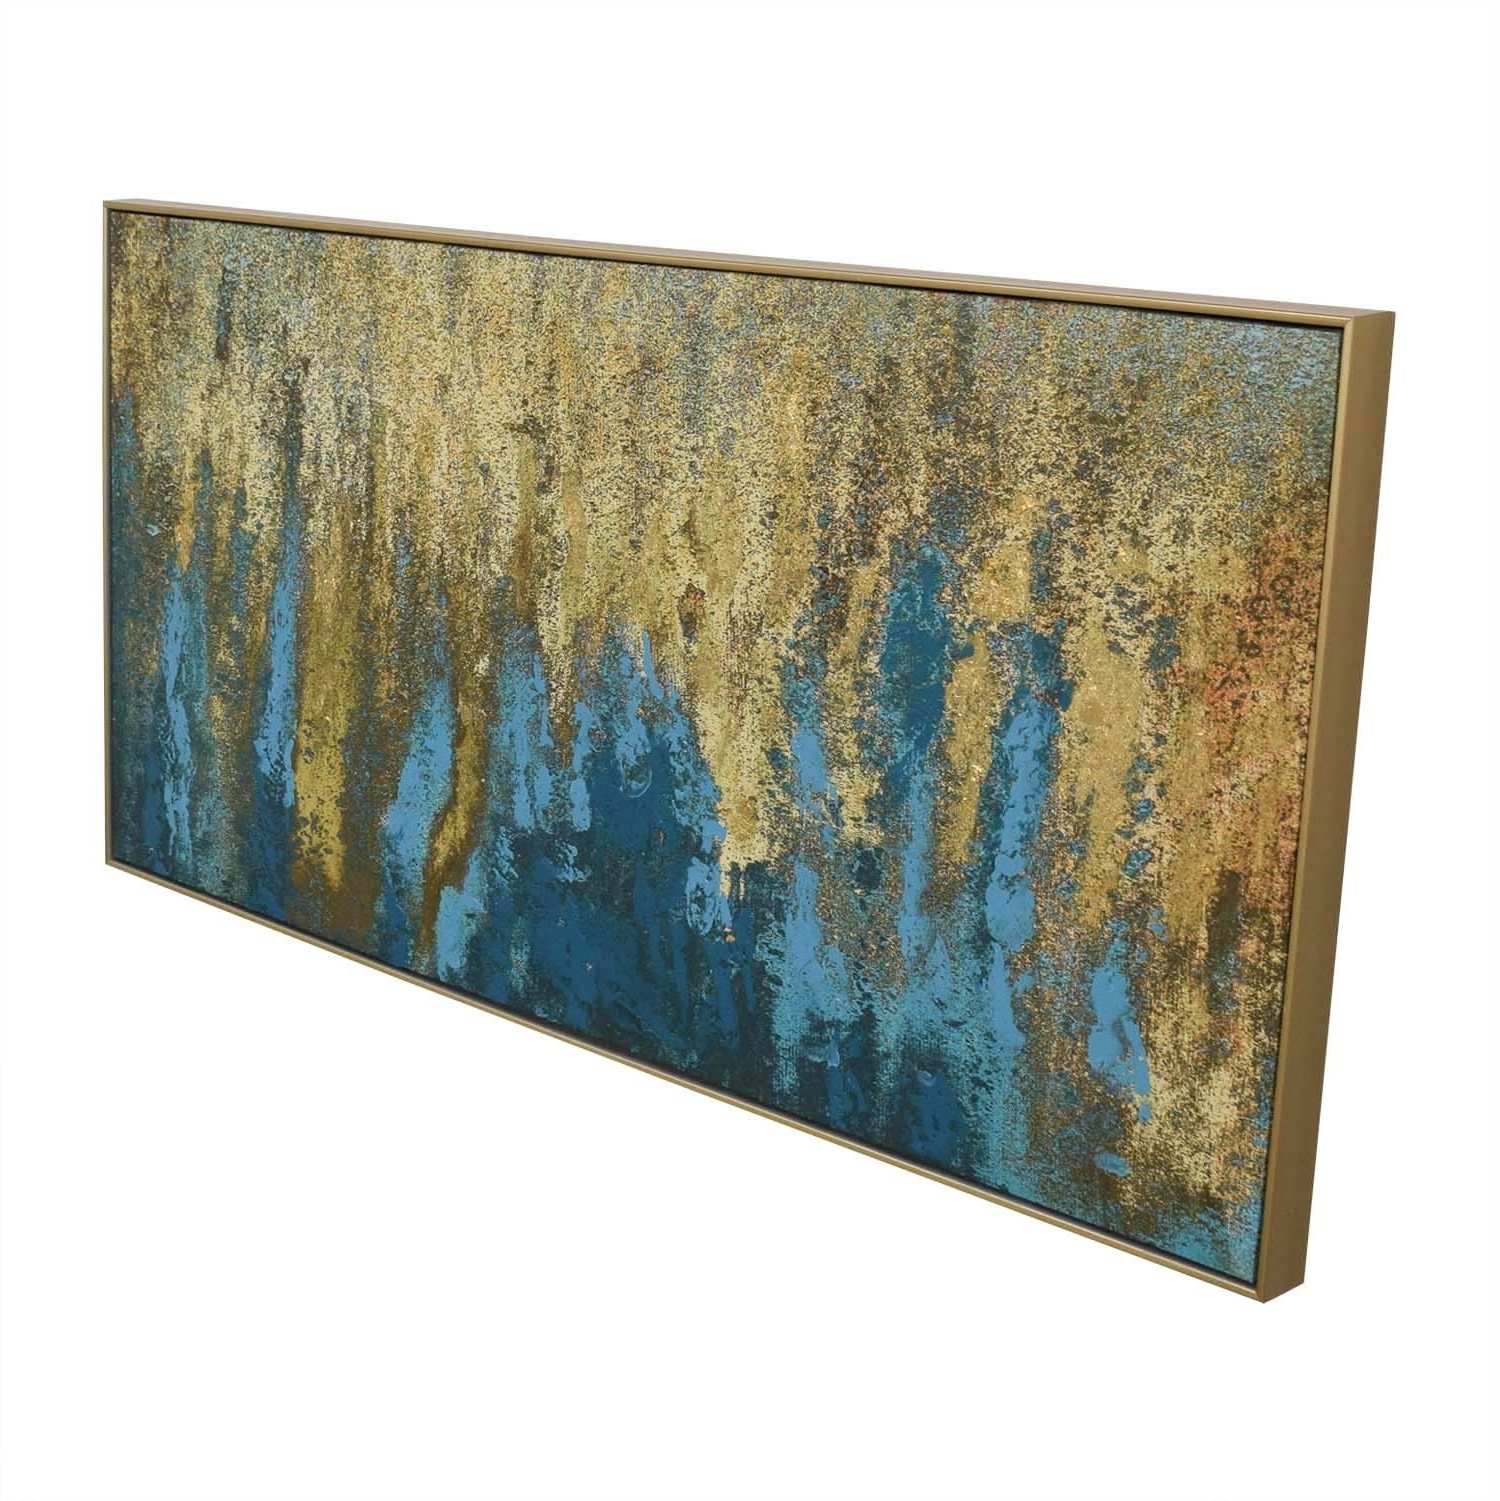 [%59% Off – World Market World Market Teal & Gold Wall Art In Gold With Regard To Well Known World Market Wall Art|World Market Wall Art Throughout Well Liked 59% Off – World Market World Market Teal & Gold Wall Art In Gold|2018 World Market Wall Art Intended For 59% Off – World Market World Market Teal & Gold Wall Art In Gold|Trendy 59% Off – World Market World Market Teal & Gold Wall Art In Gold Throughout World Market Wall Art%] (View 1 of 20)